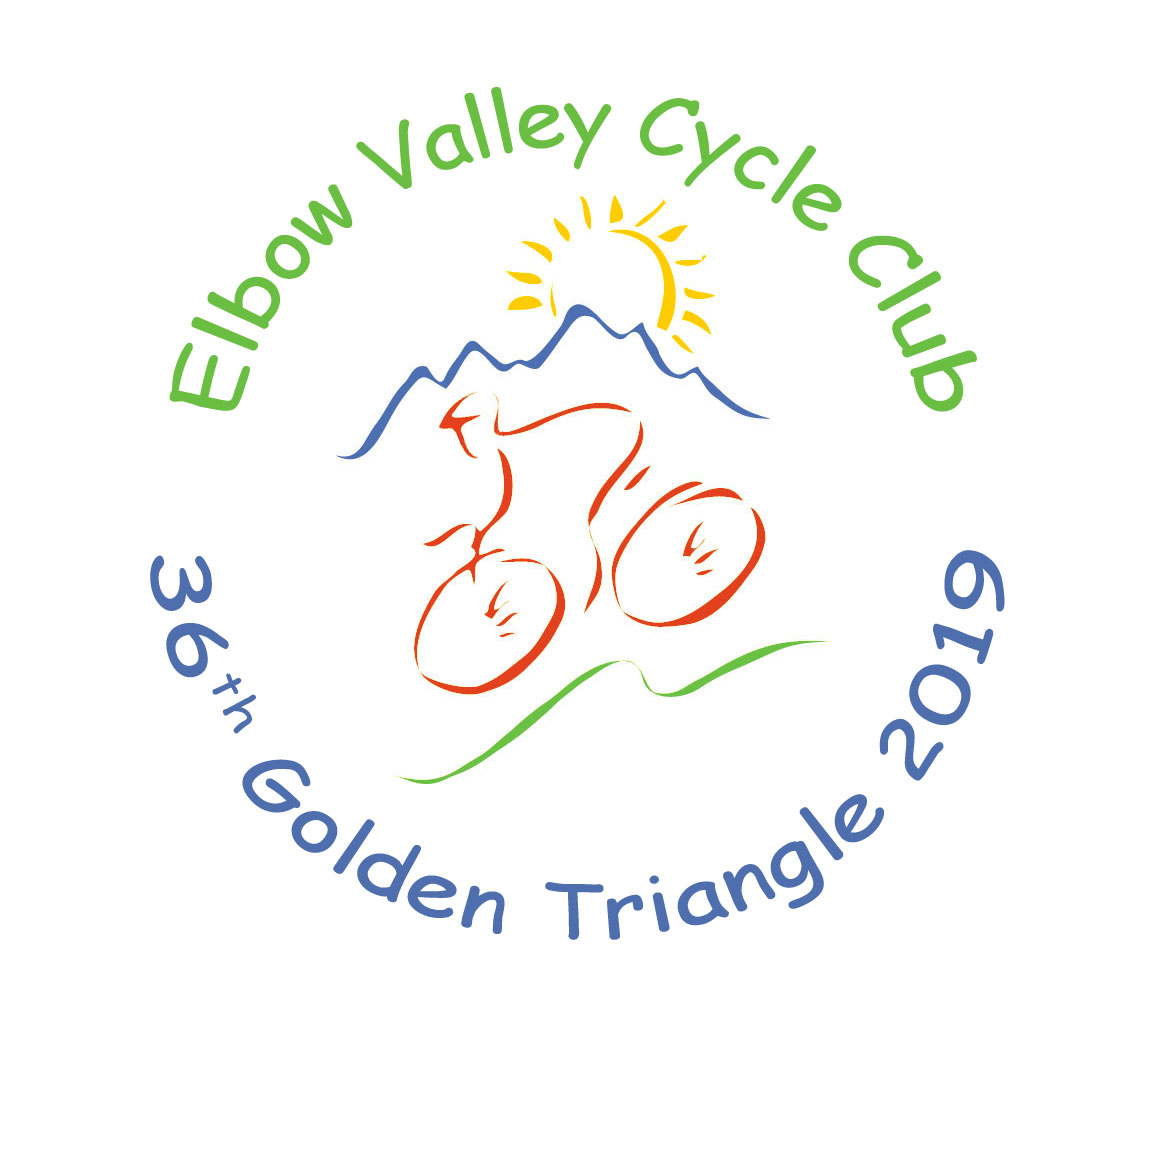 Elbow Valley Cycle Club